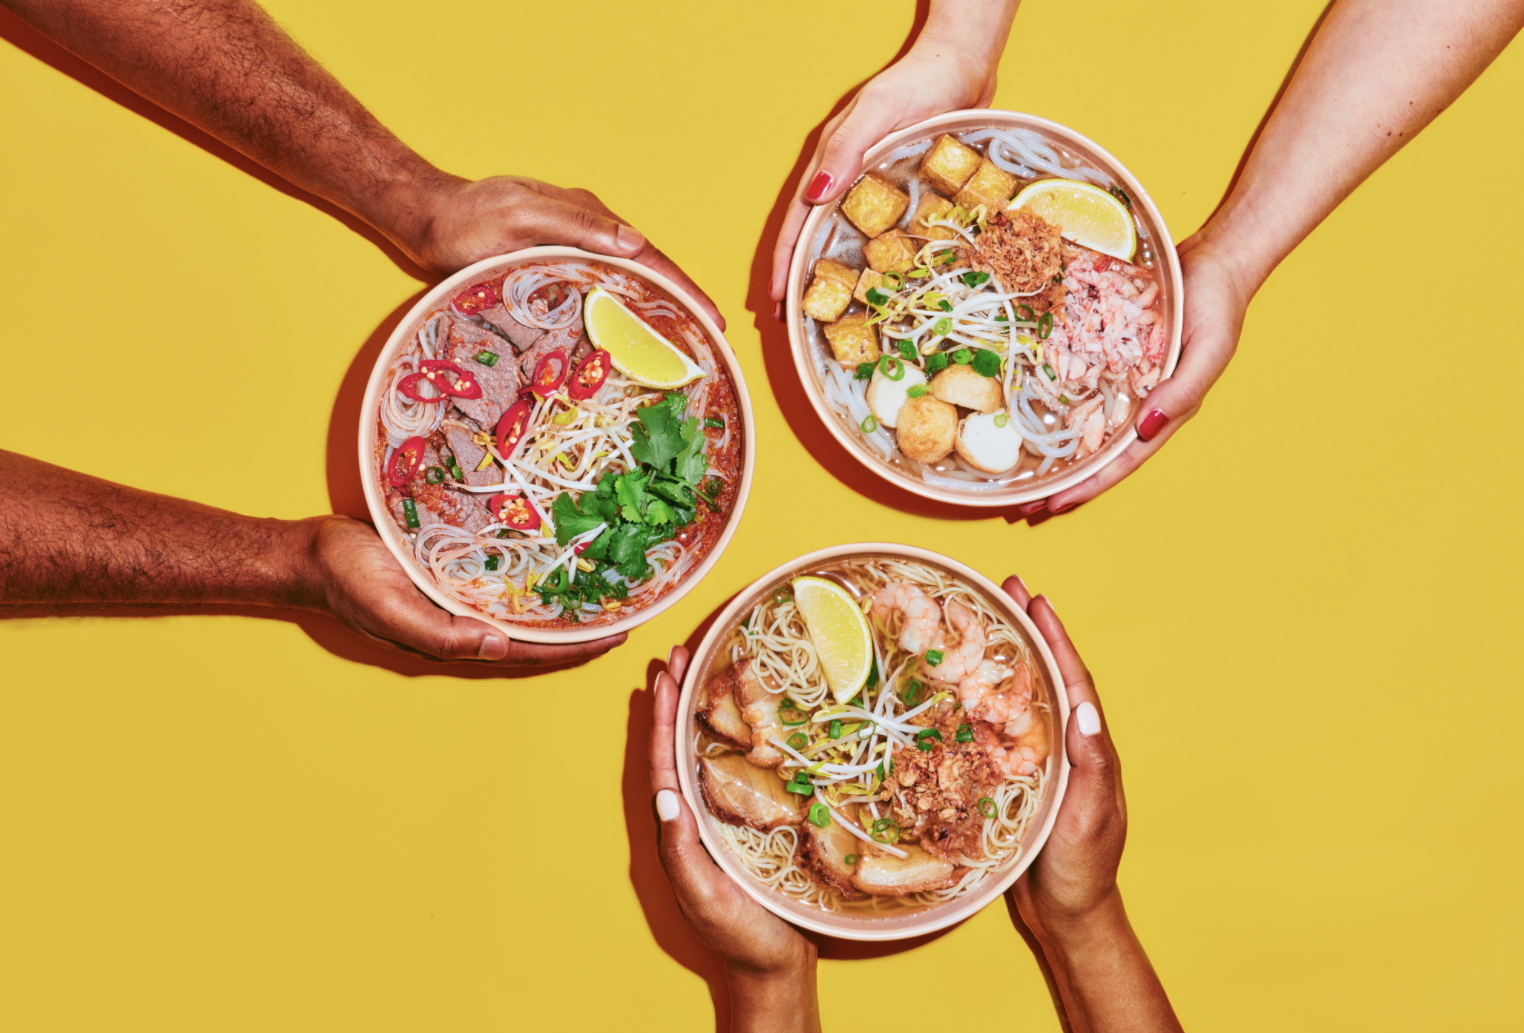 Roll'd Are Sharing Three Traditional Vietnamese Soups Based on Their Own Family Recipes